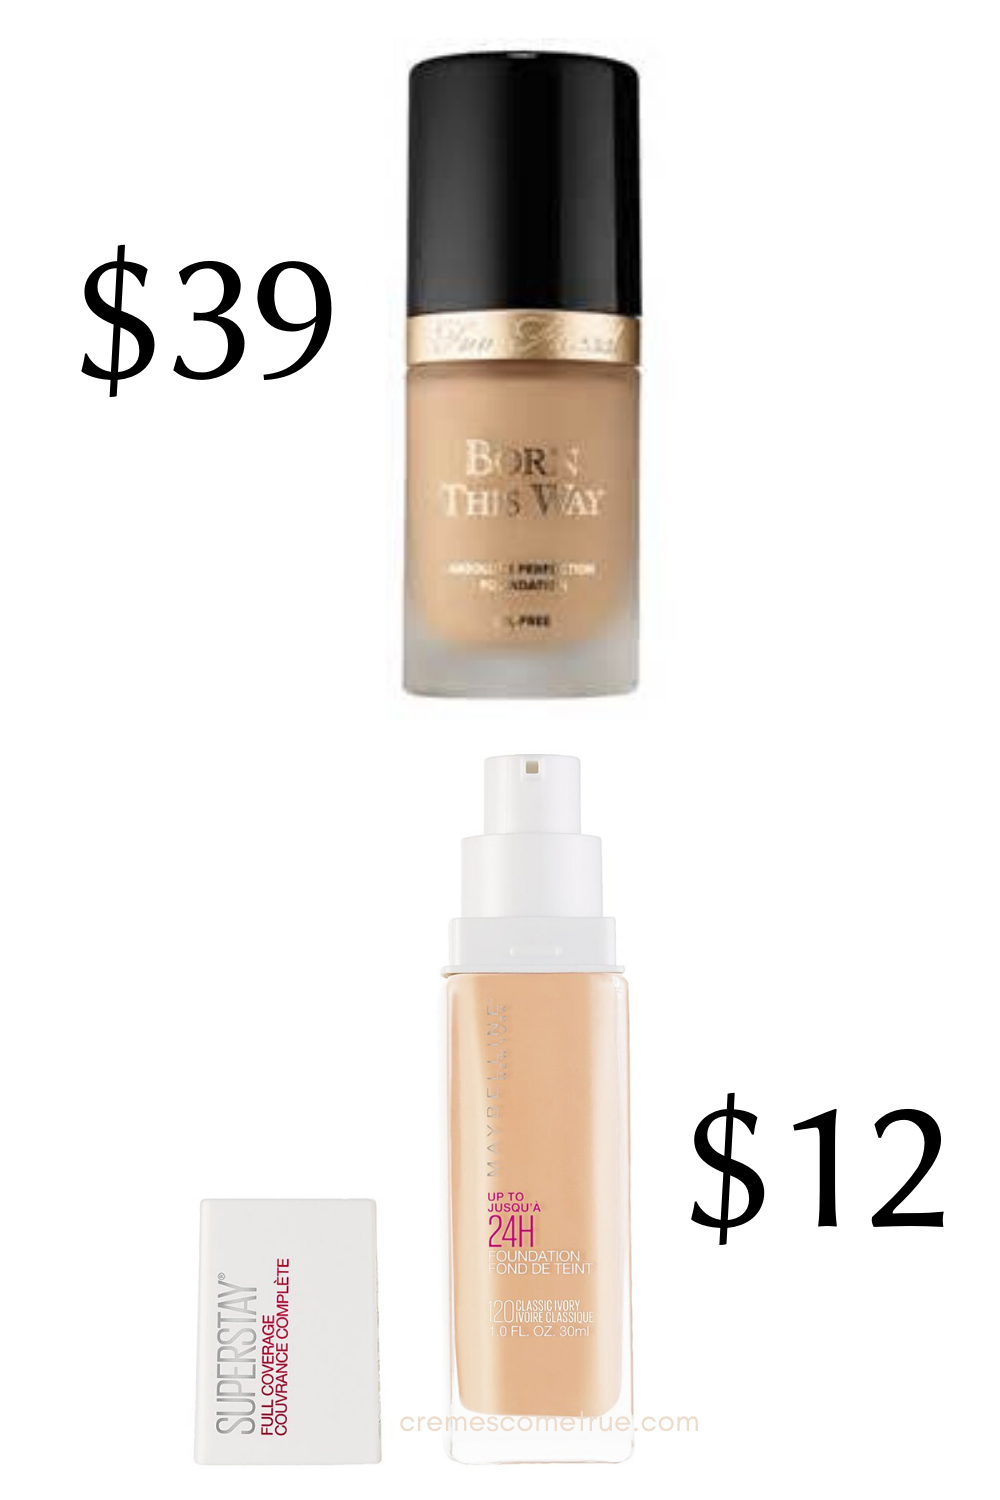 Who doesn't LOVE drugstore makeup dupes?! I mean, I love